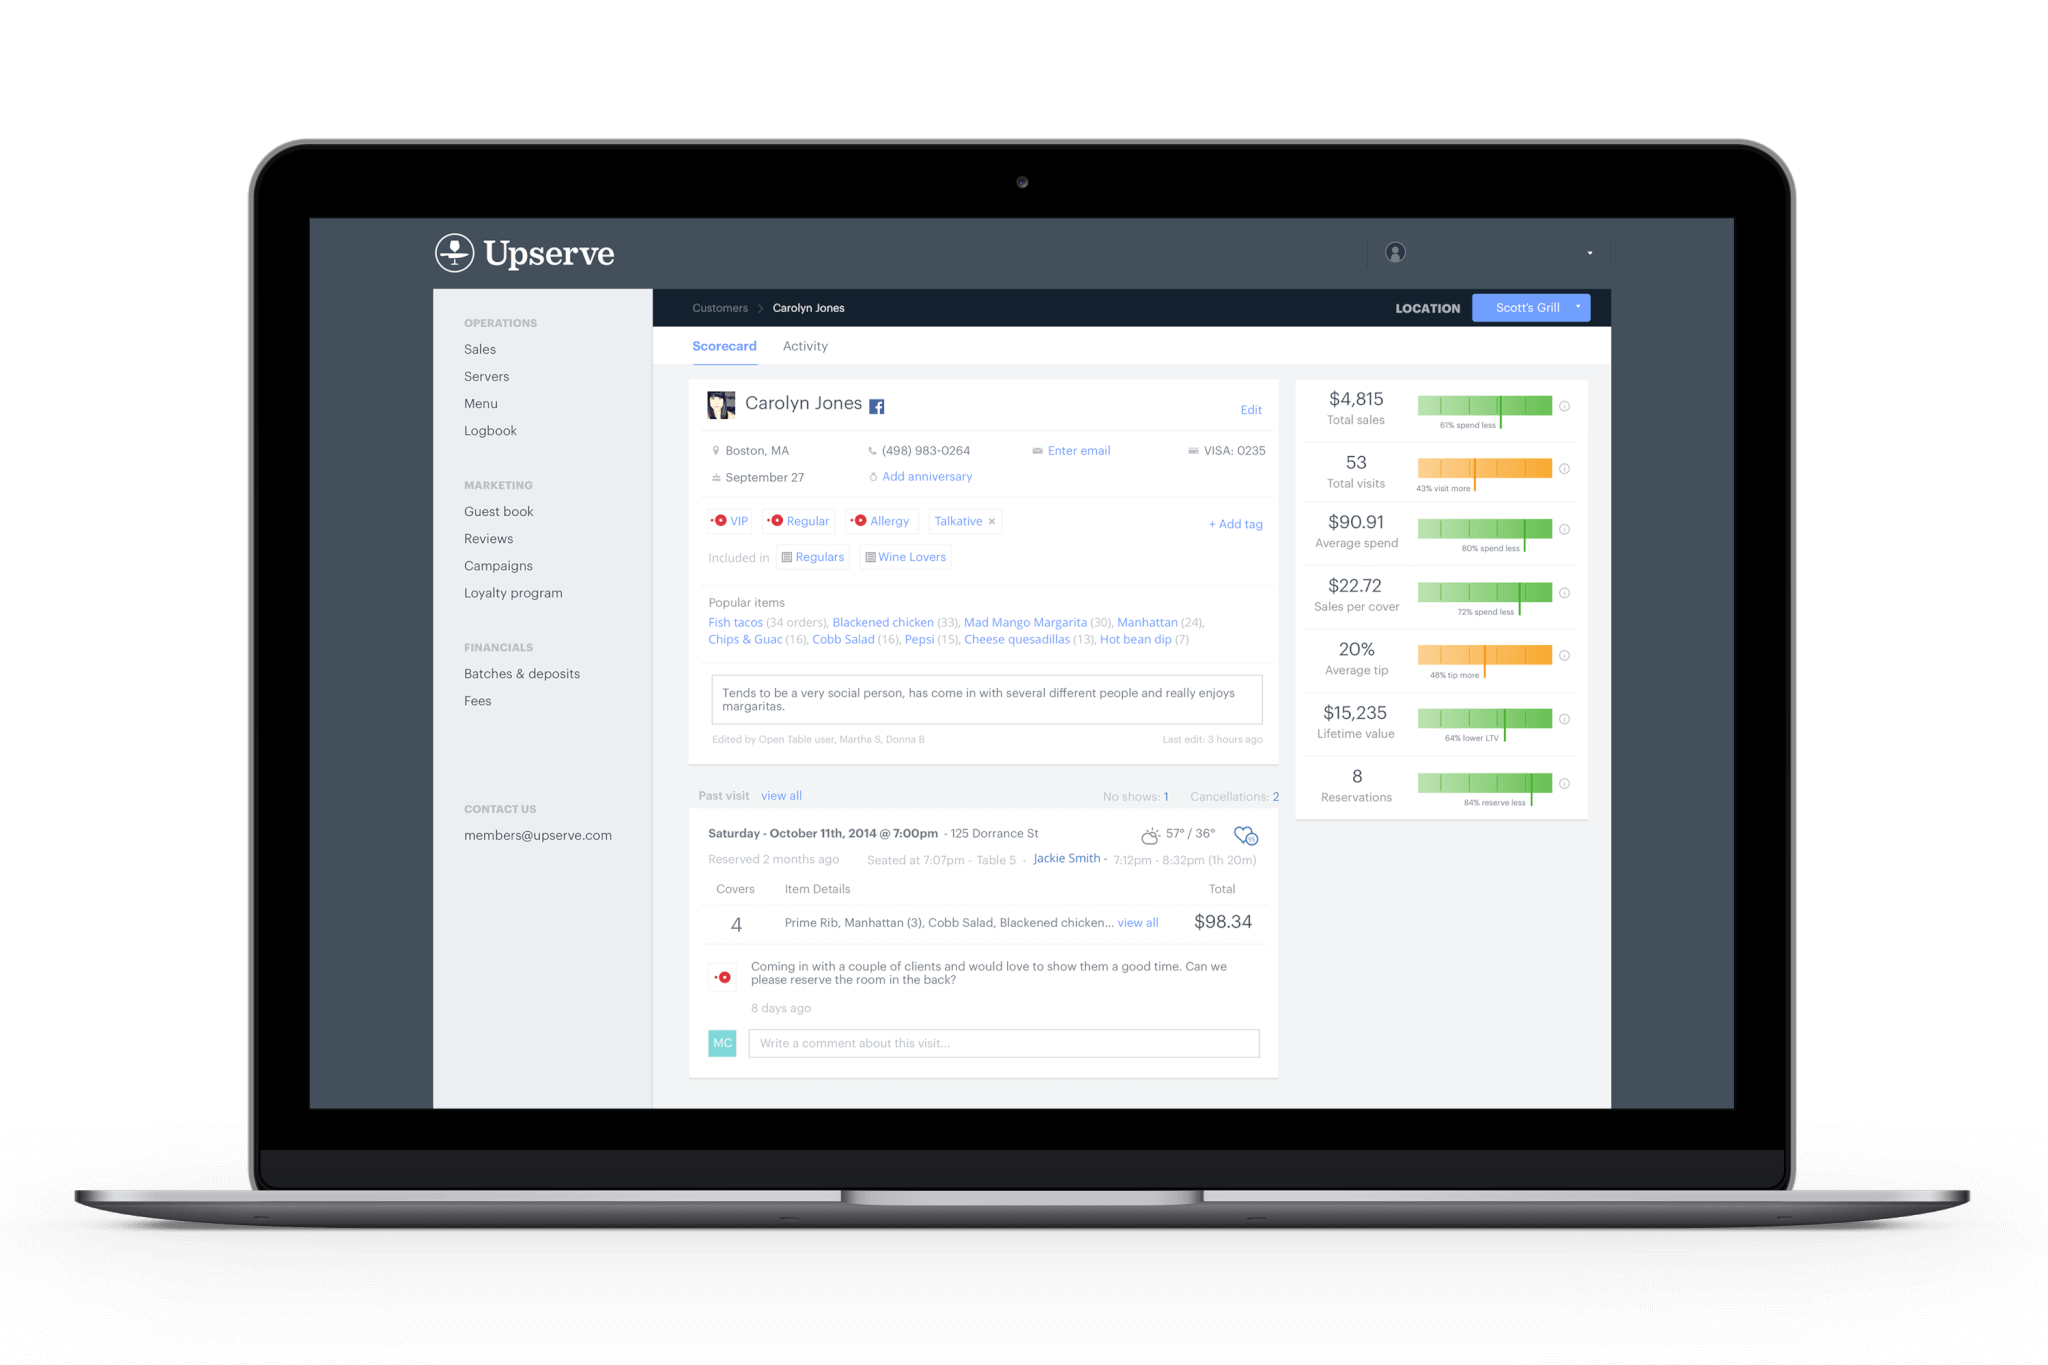 Track your VIPs and your customer loyalty through Upserve's guestbook